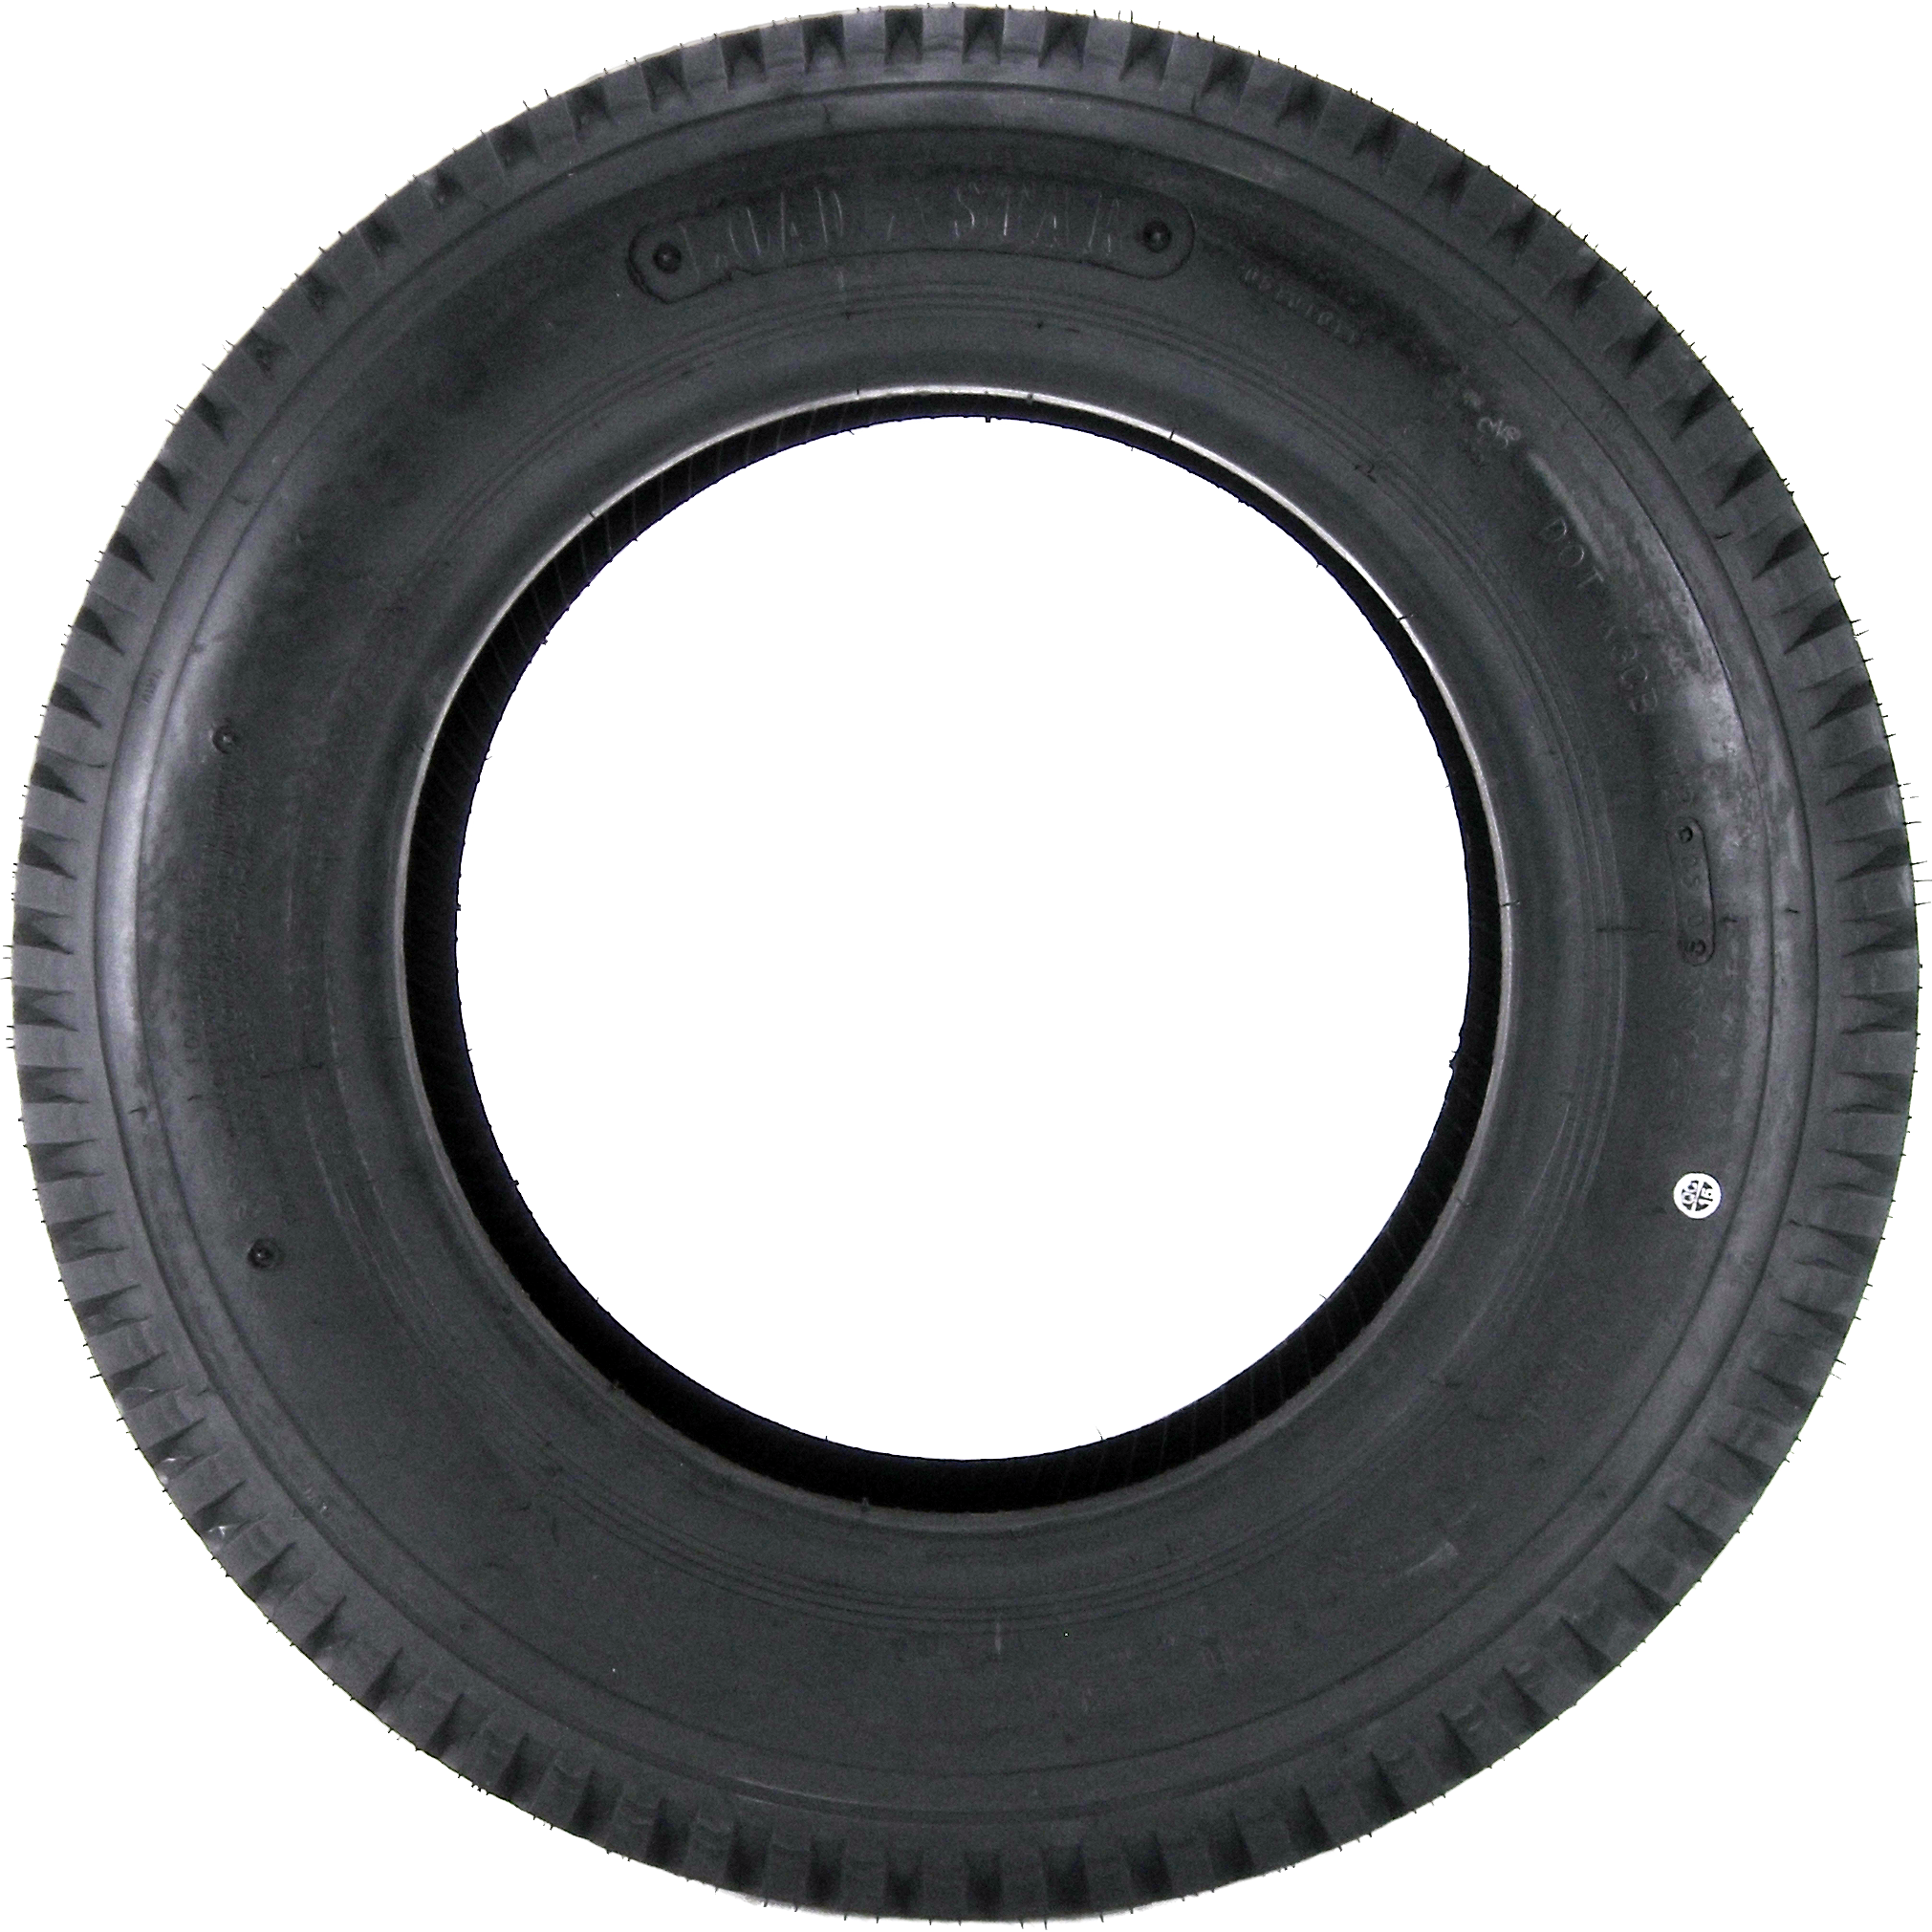 Tires Png Trailer Tires image #459